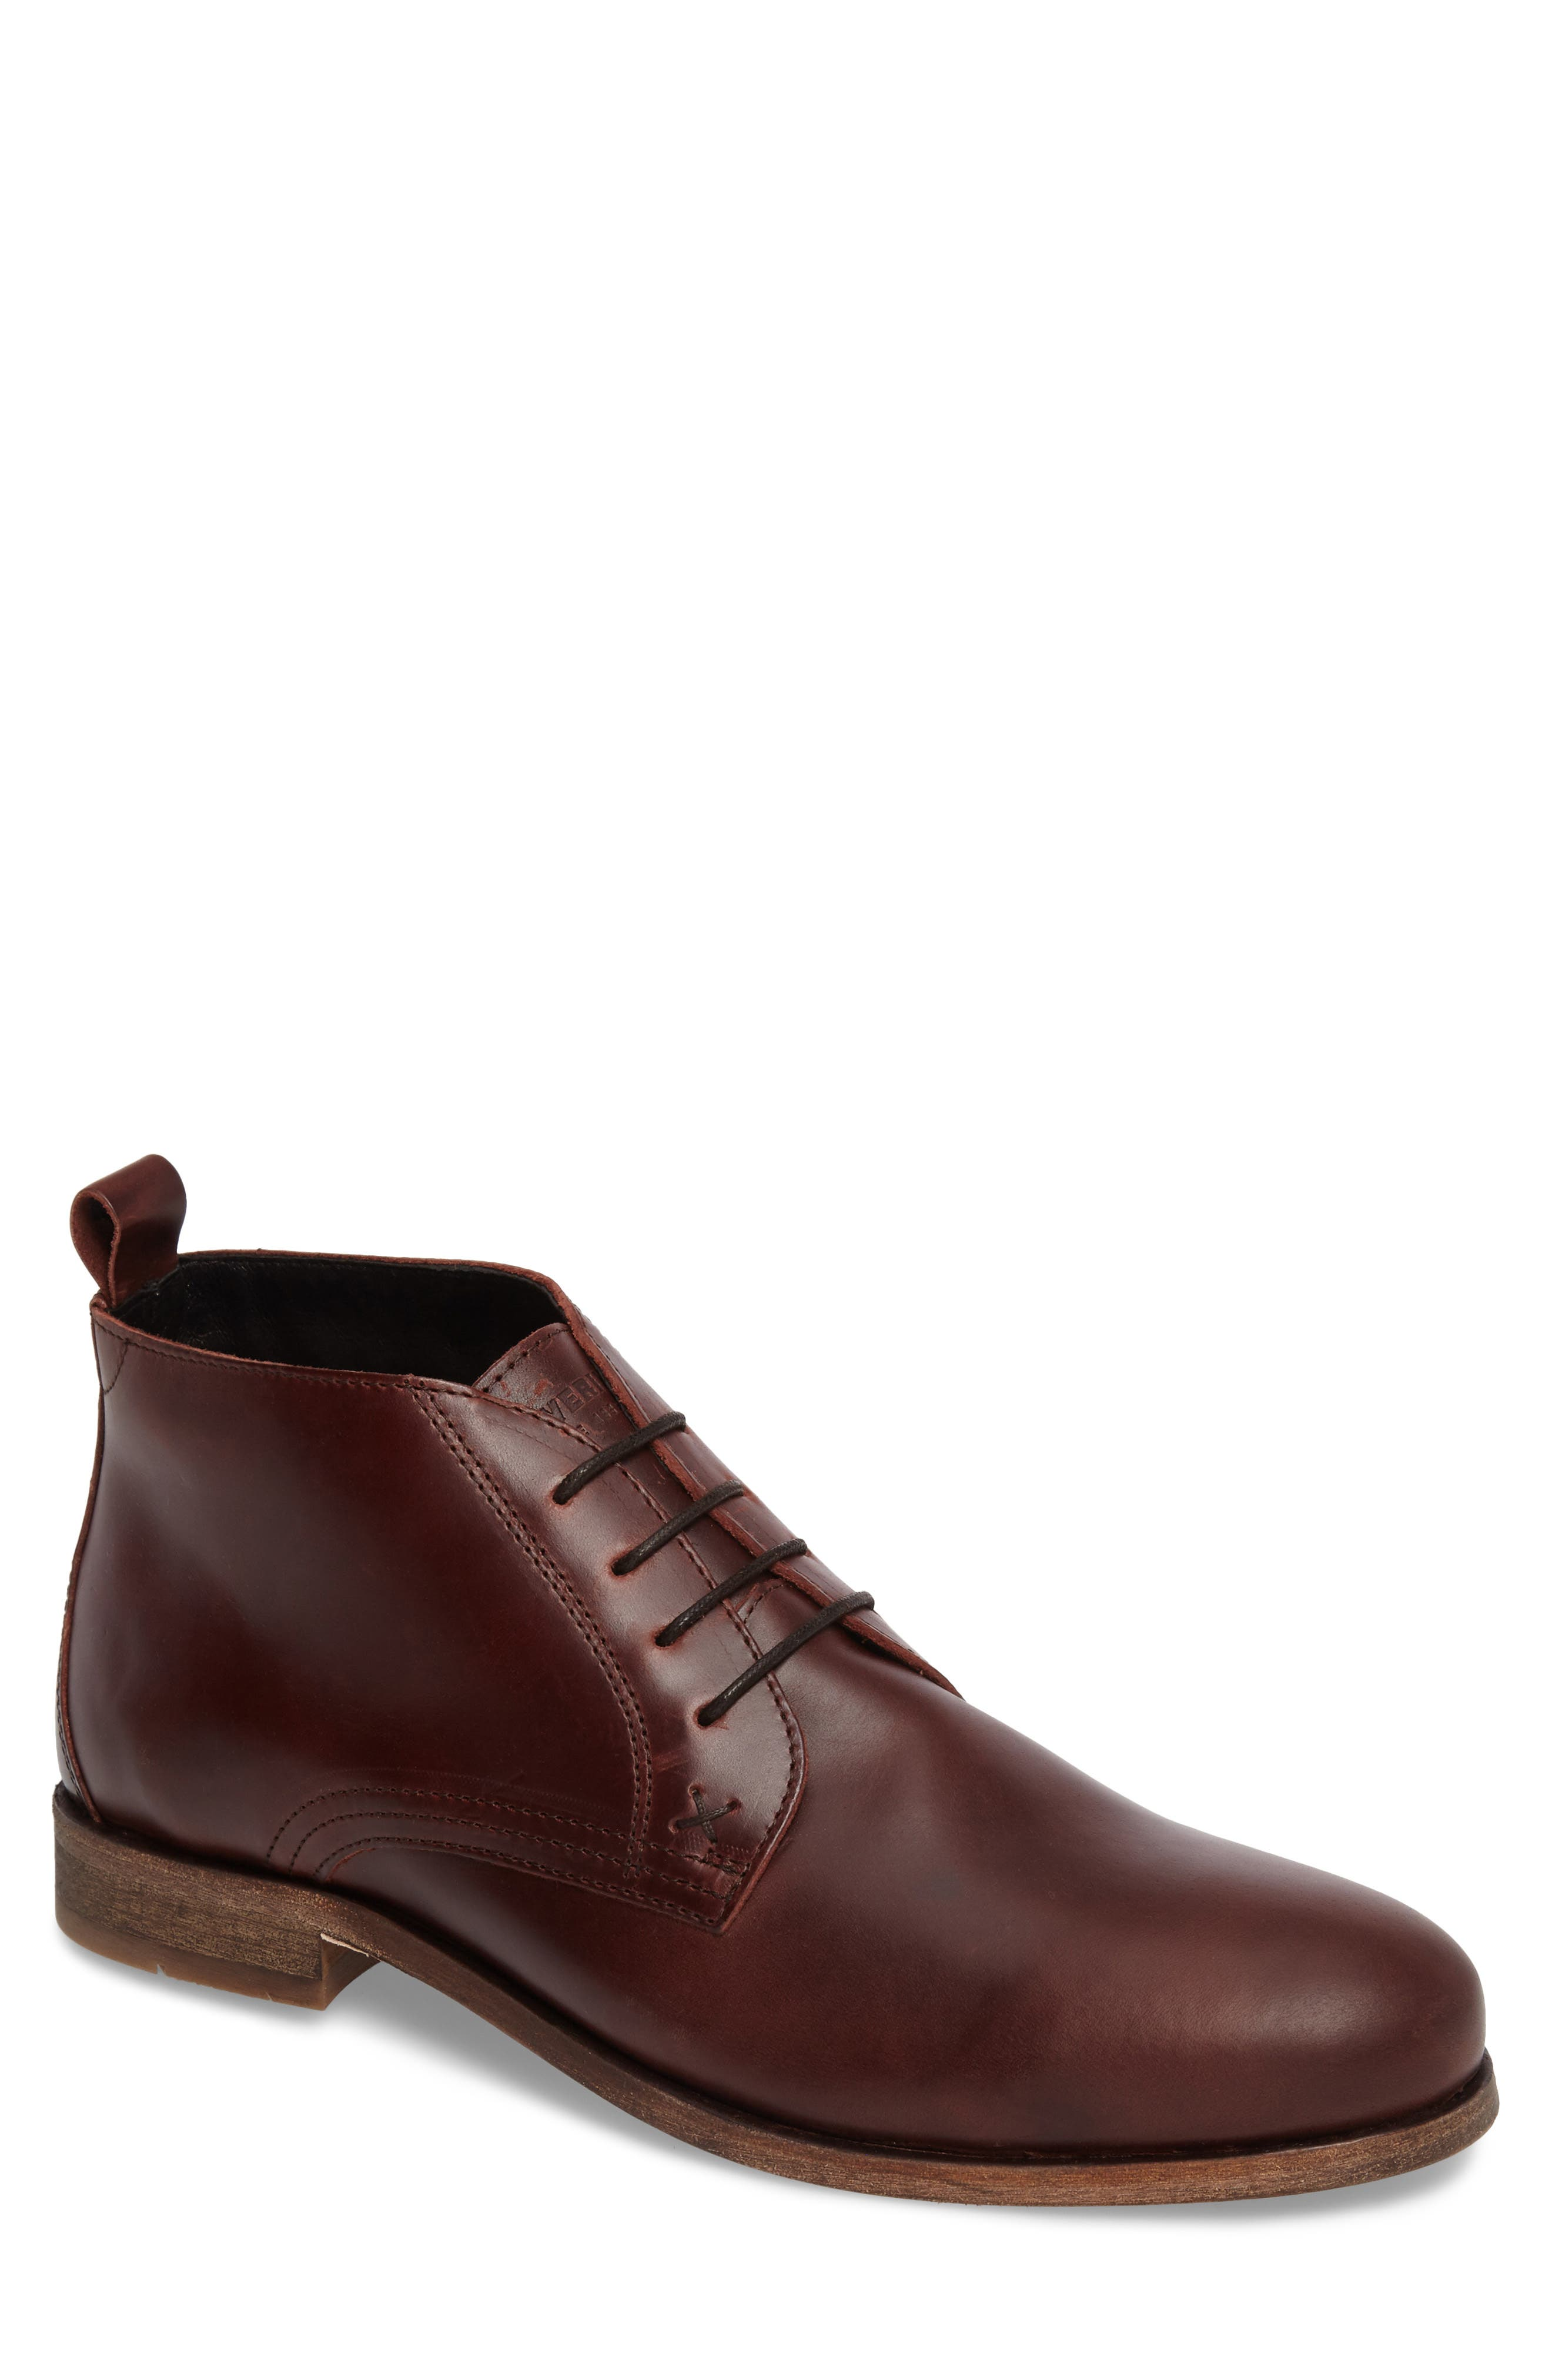 Deacon Chukka Boot,                         Main,                         color, Brown Leather